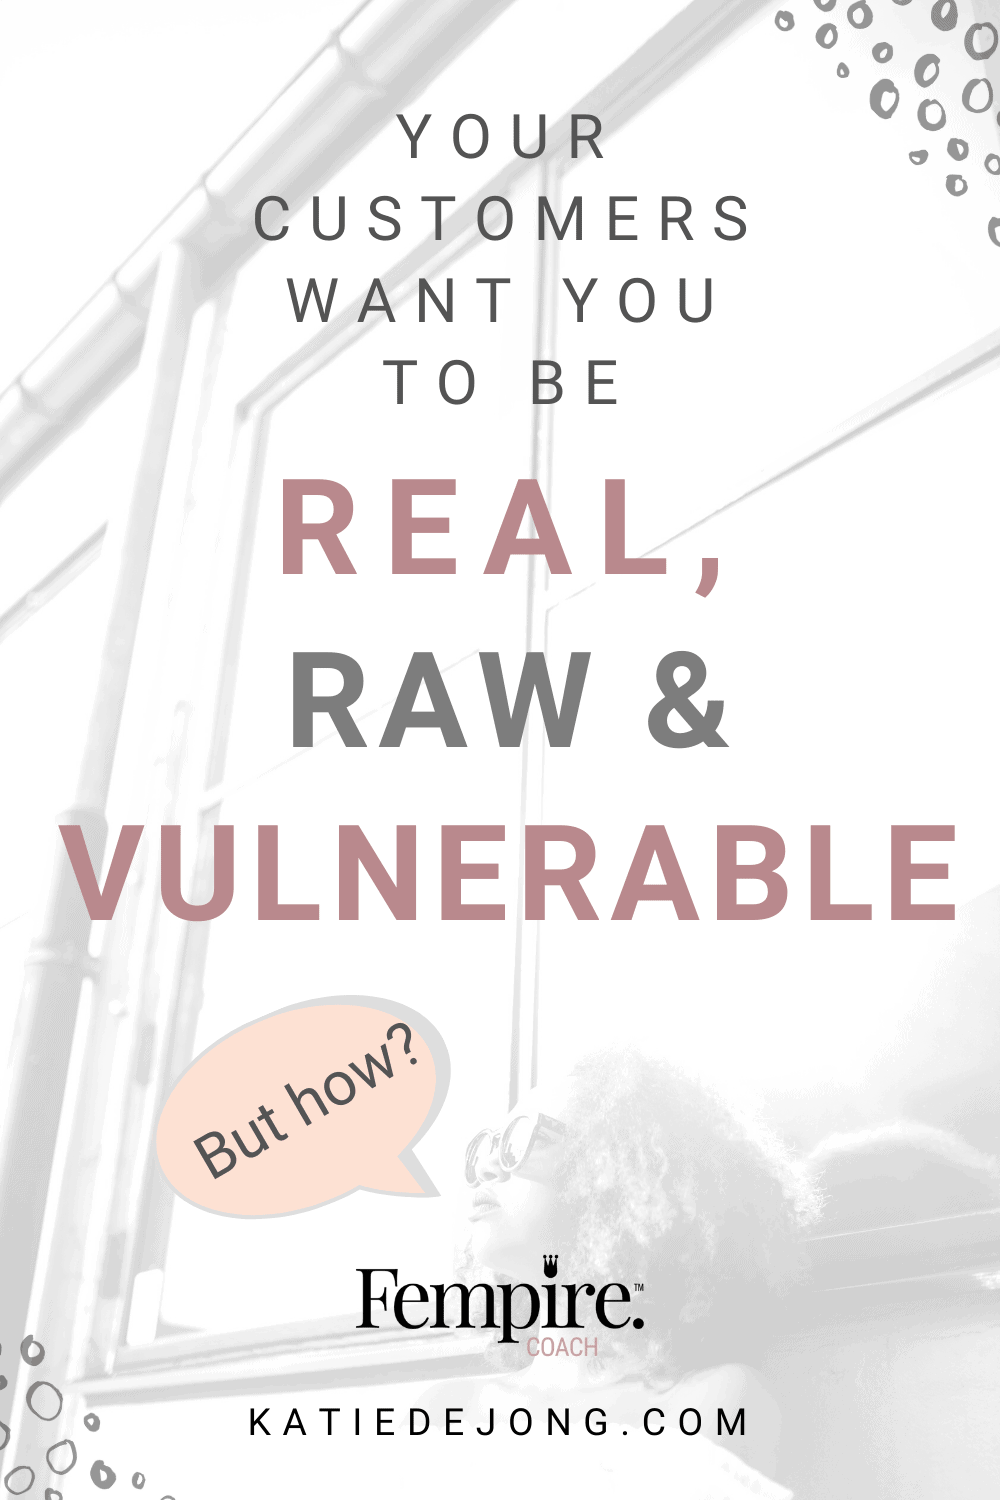 Your audience doesn't want polished, perfect marketing. They're craving more authenticity, depth and substance and less hype. Read on to discover why and how you can run a profitable business by being true to yourself. #authenticmarketing #authenticity #authenticbusiness #smallbusiness #businesscoach #fempire #fempirecoach